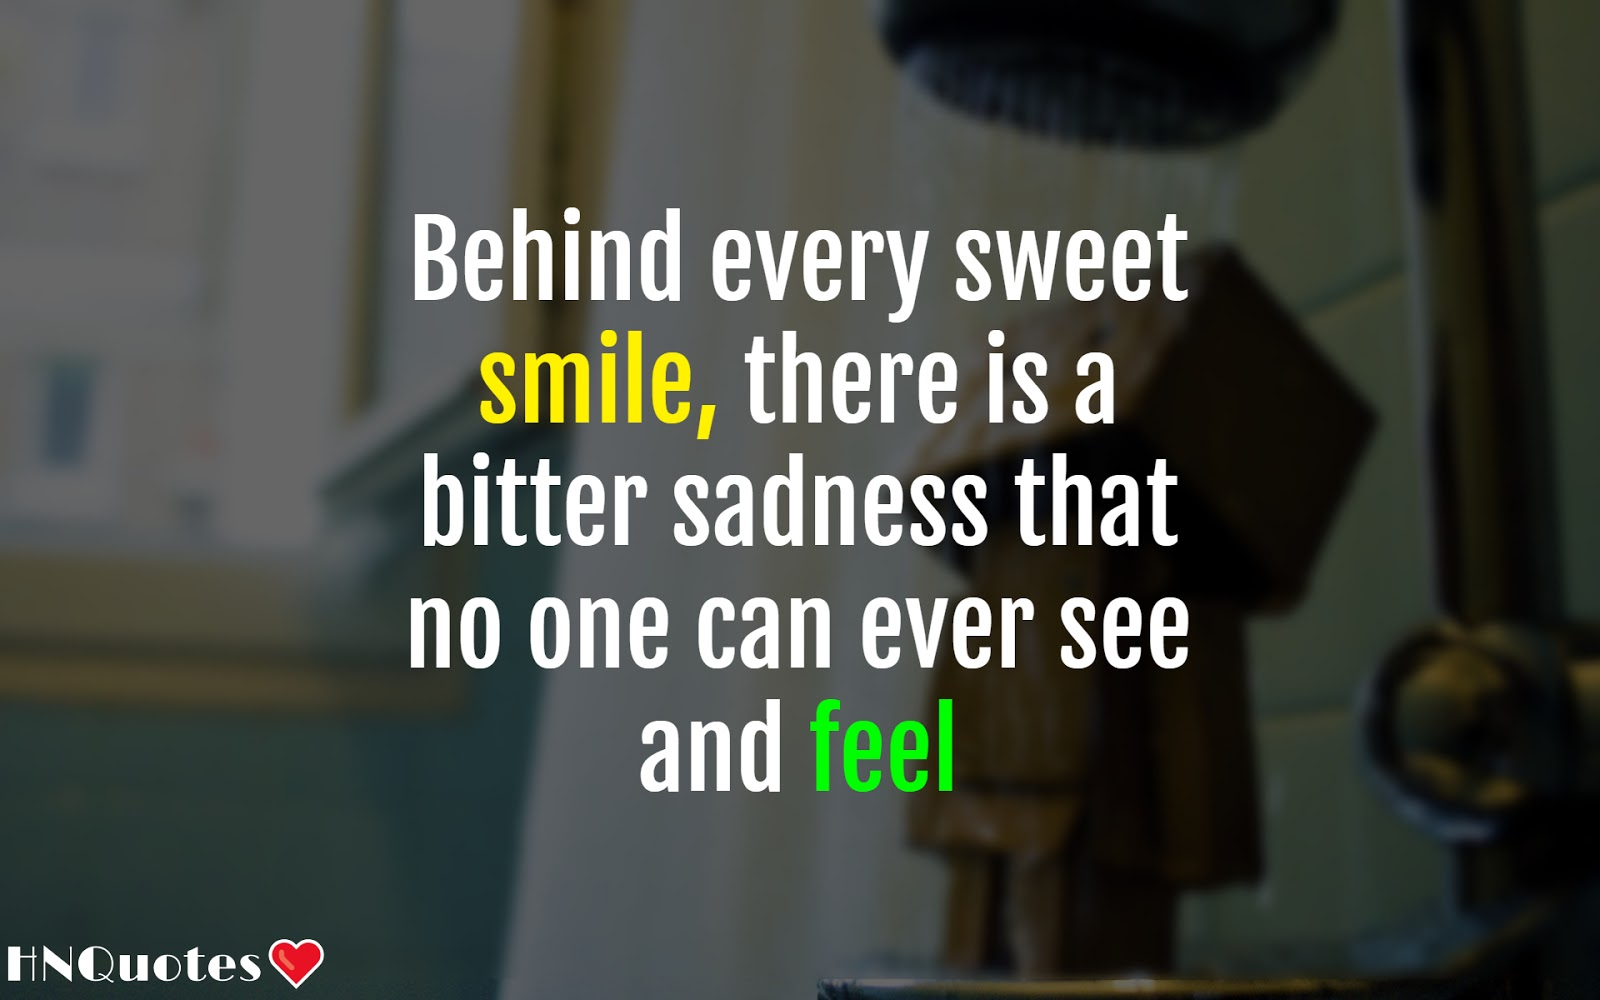 Sad-&-Emotional-Quotes-on-Life-72-Best-Emotional-Quotes[HNQuotes]